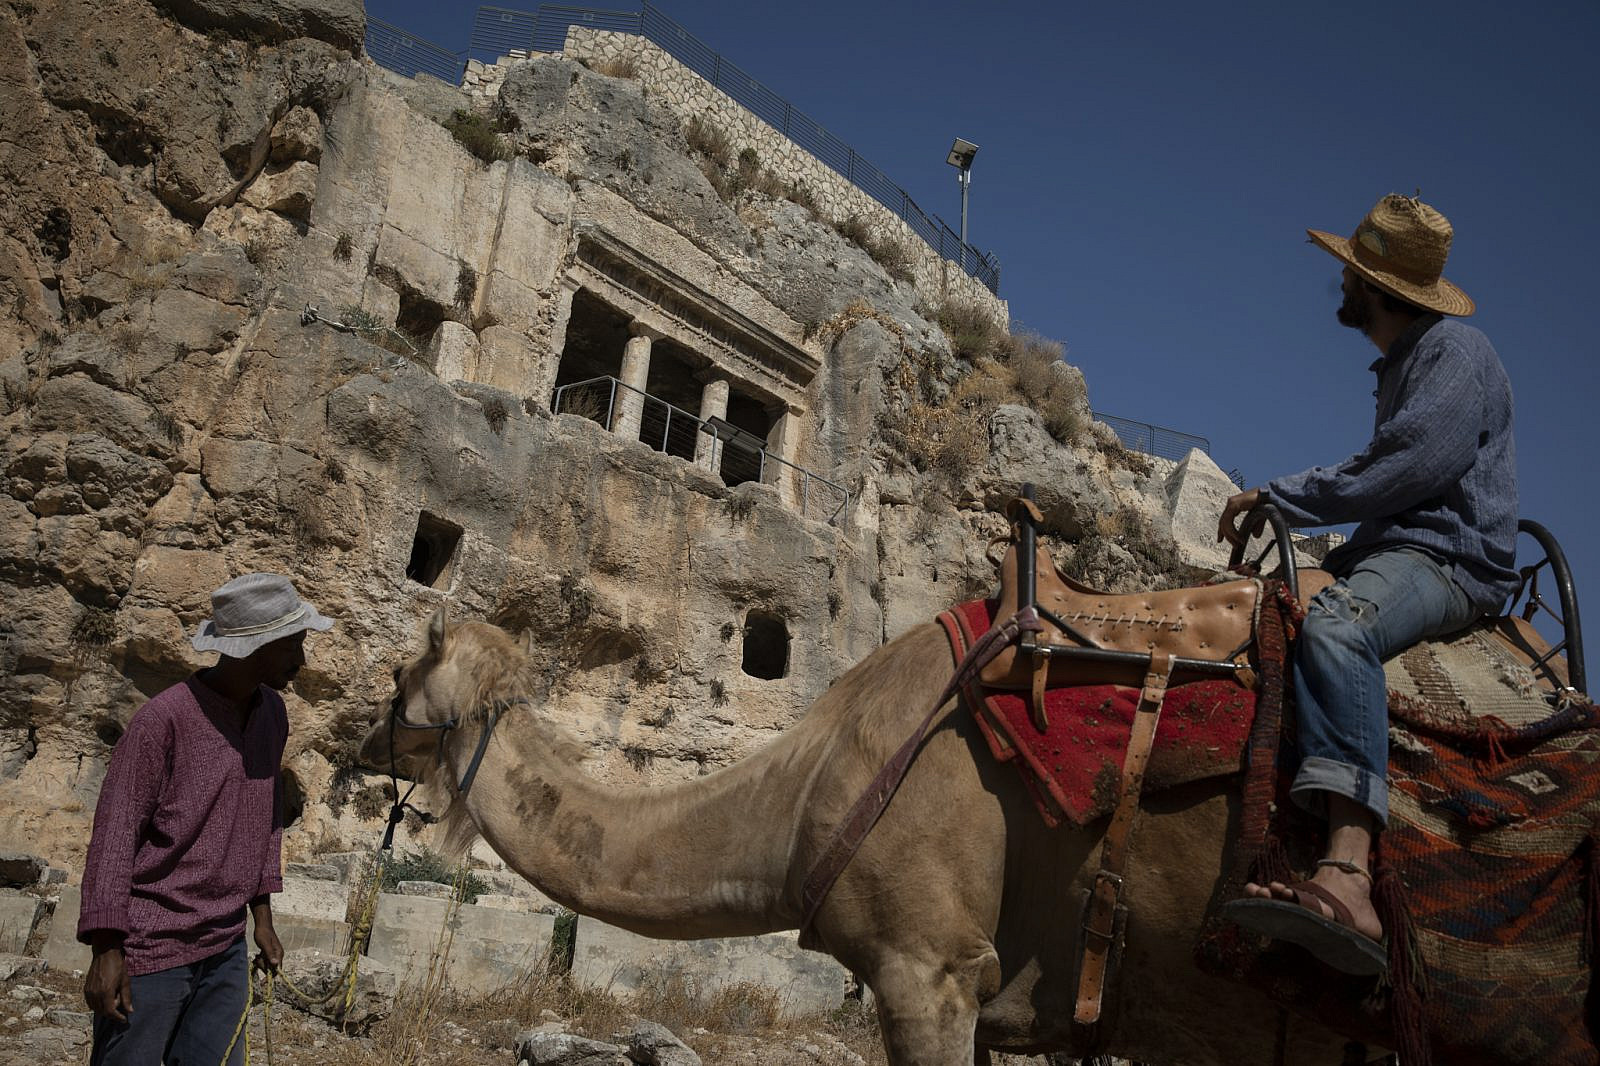 An Israeli man rides a camel for tourists to walk through the Tomb of Zechariah and the Tomb of Benei Hezir. August 4, 2019. (Hadas Parush/Flash90)